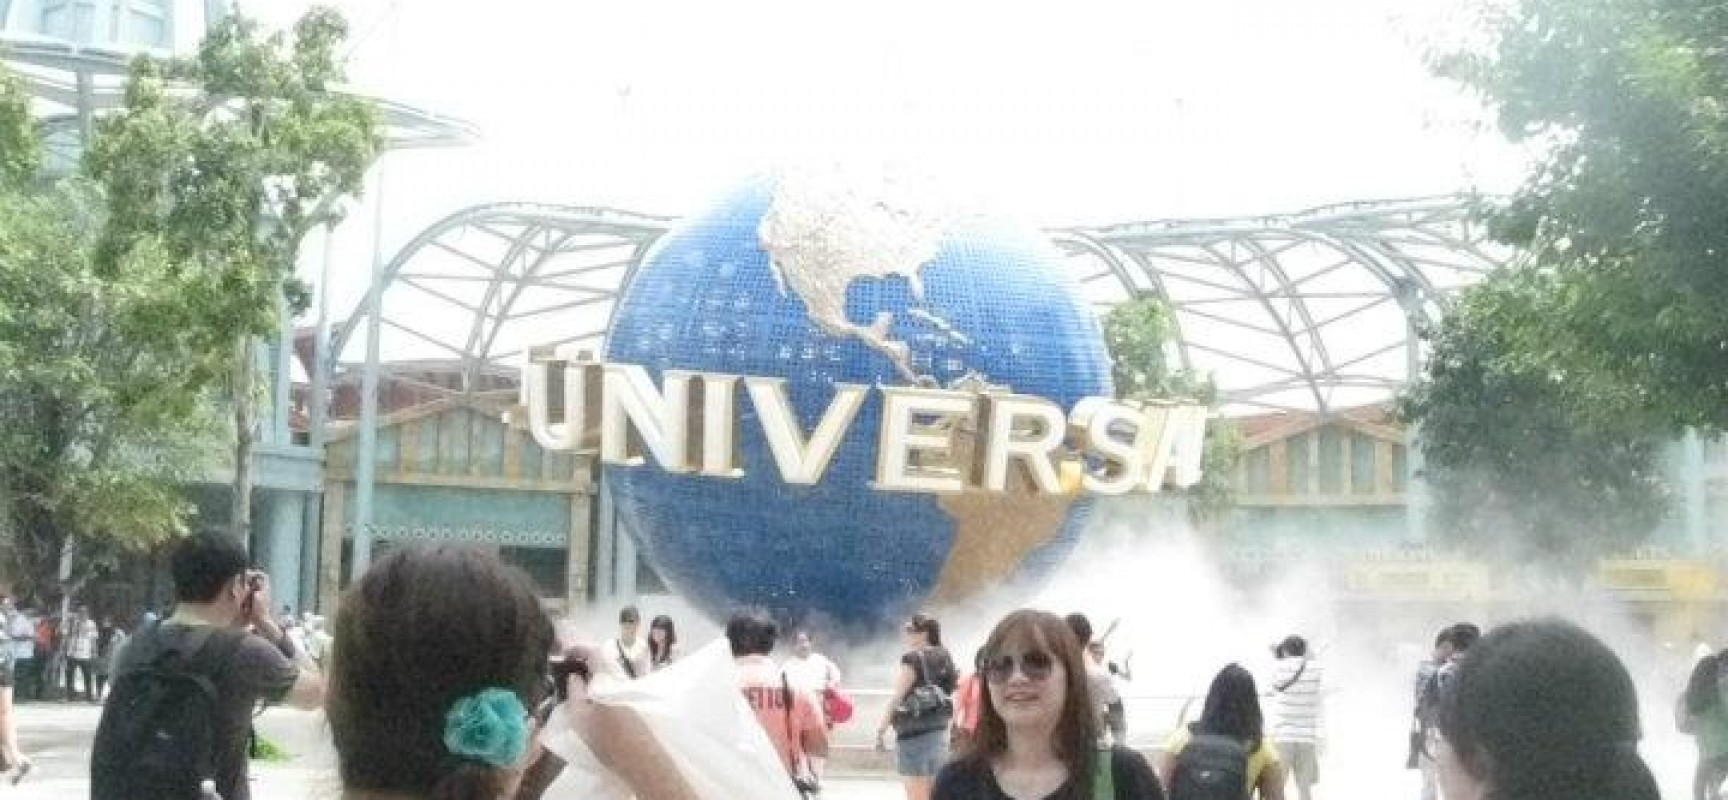 Universal Studios Singapore: A Magical Journey